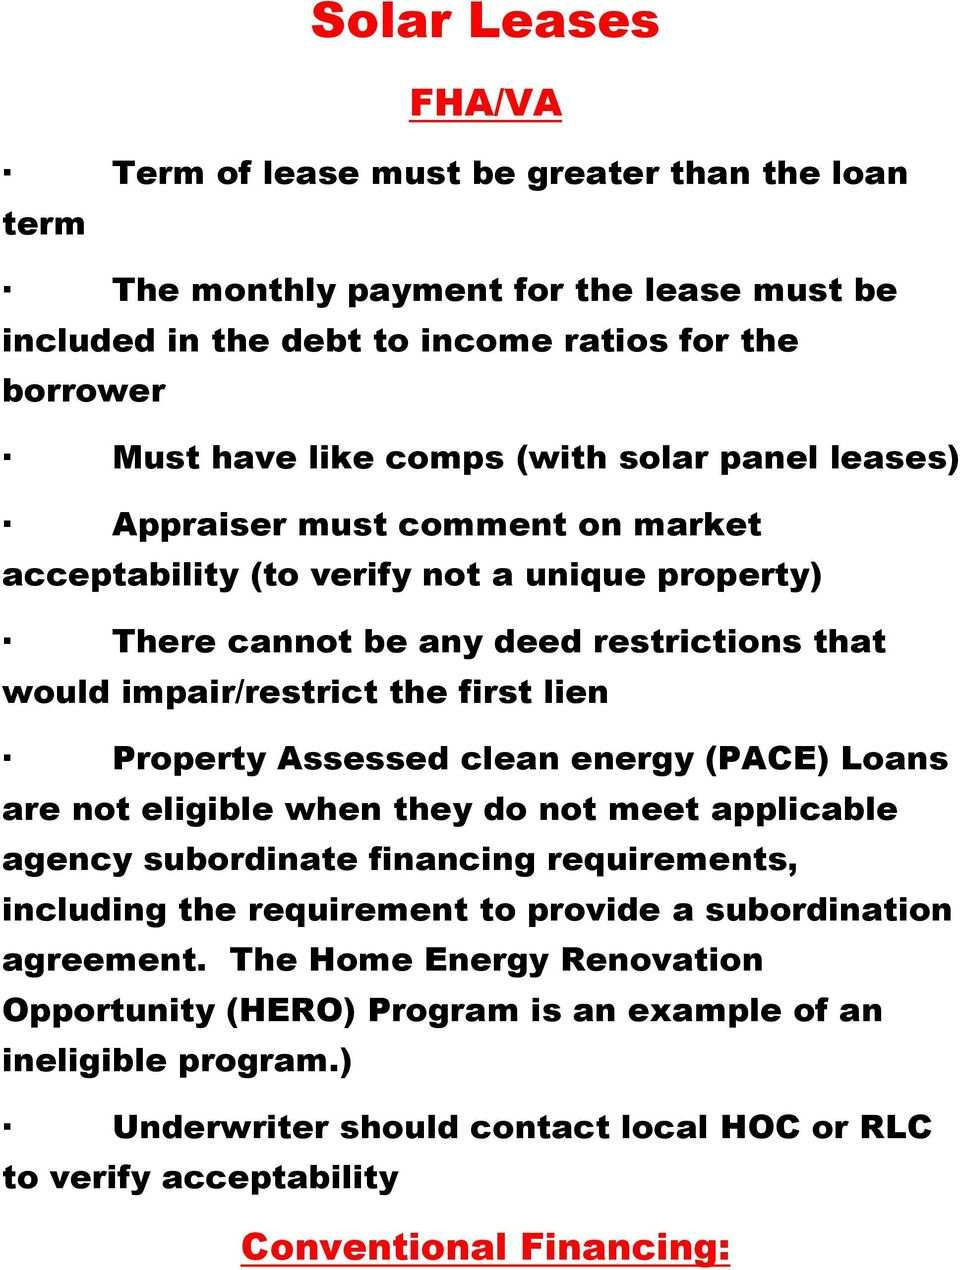 Solar Leases Fhava Term Of Lease Must Be Greater Than The Loan